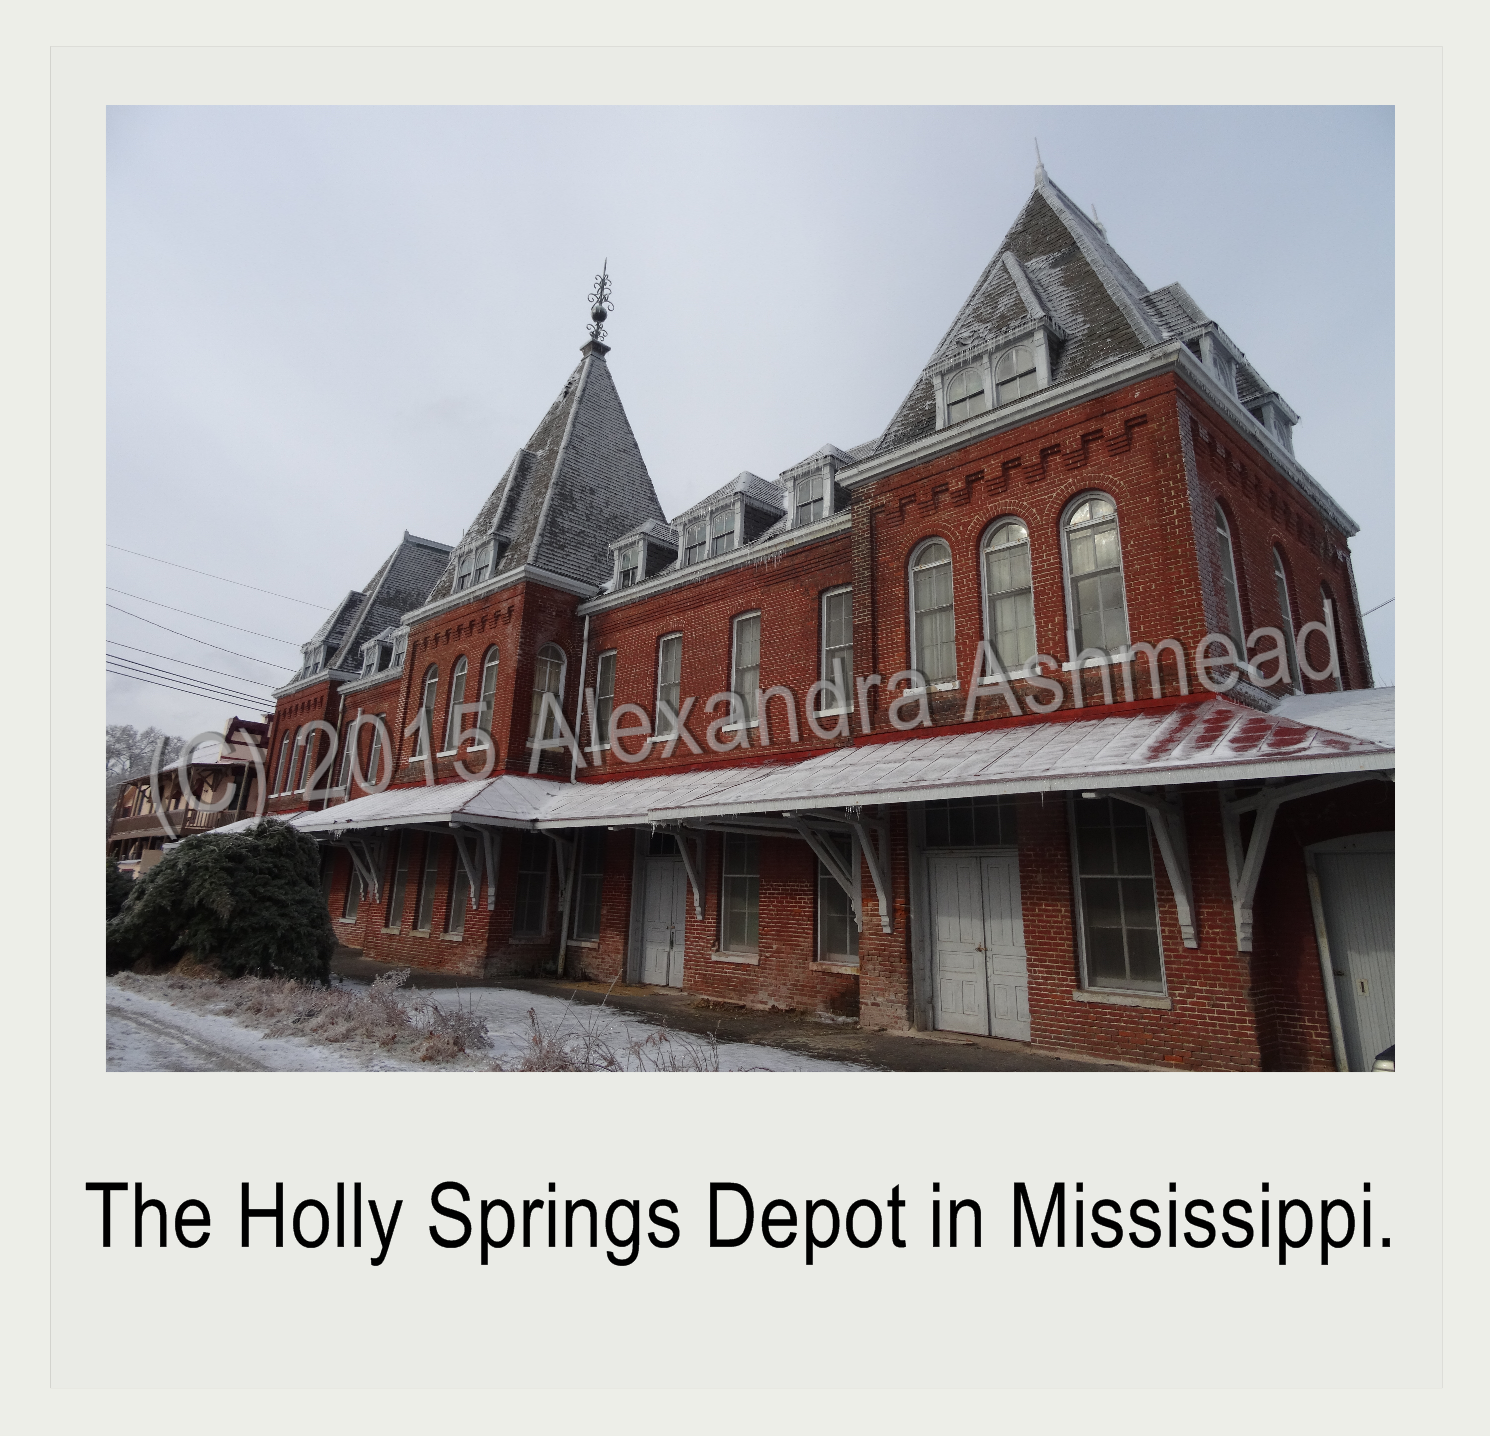 Holly Springs Depot After a Snow Storm (c) 2015 Alexandra Ashmead